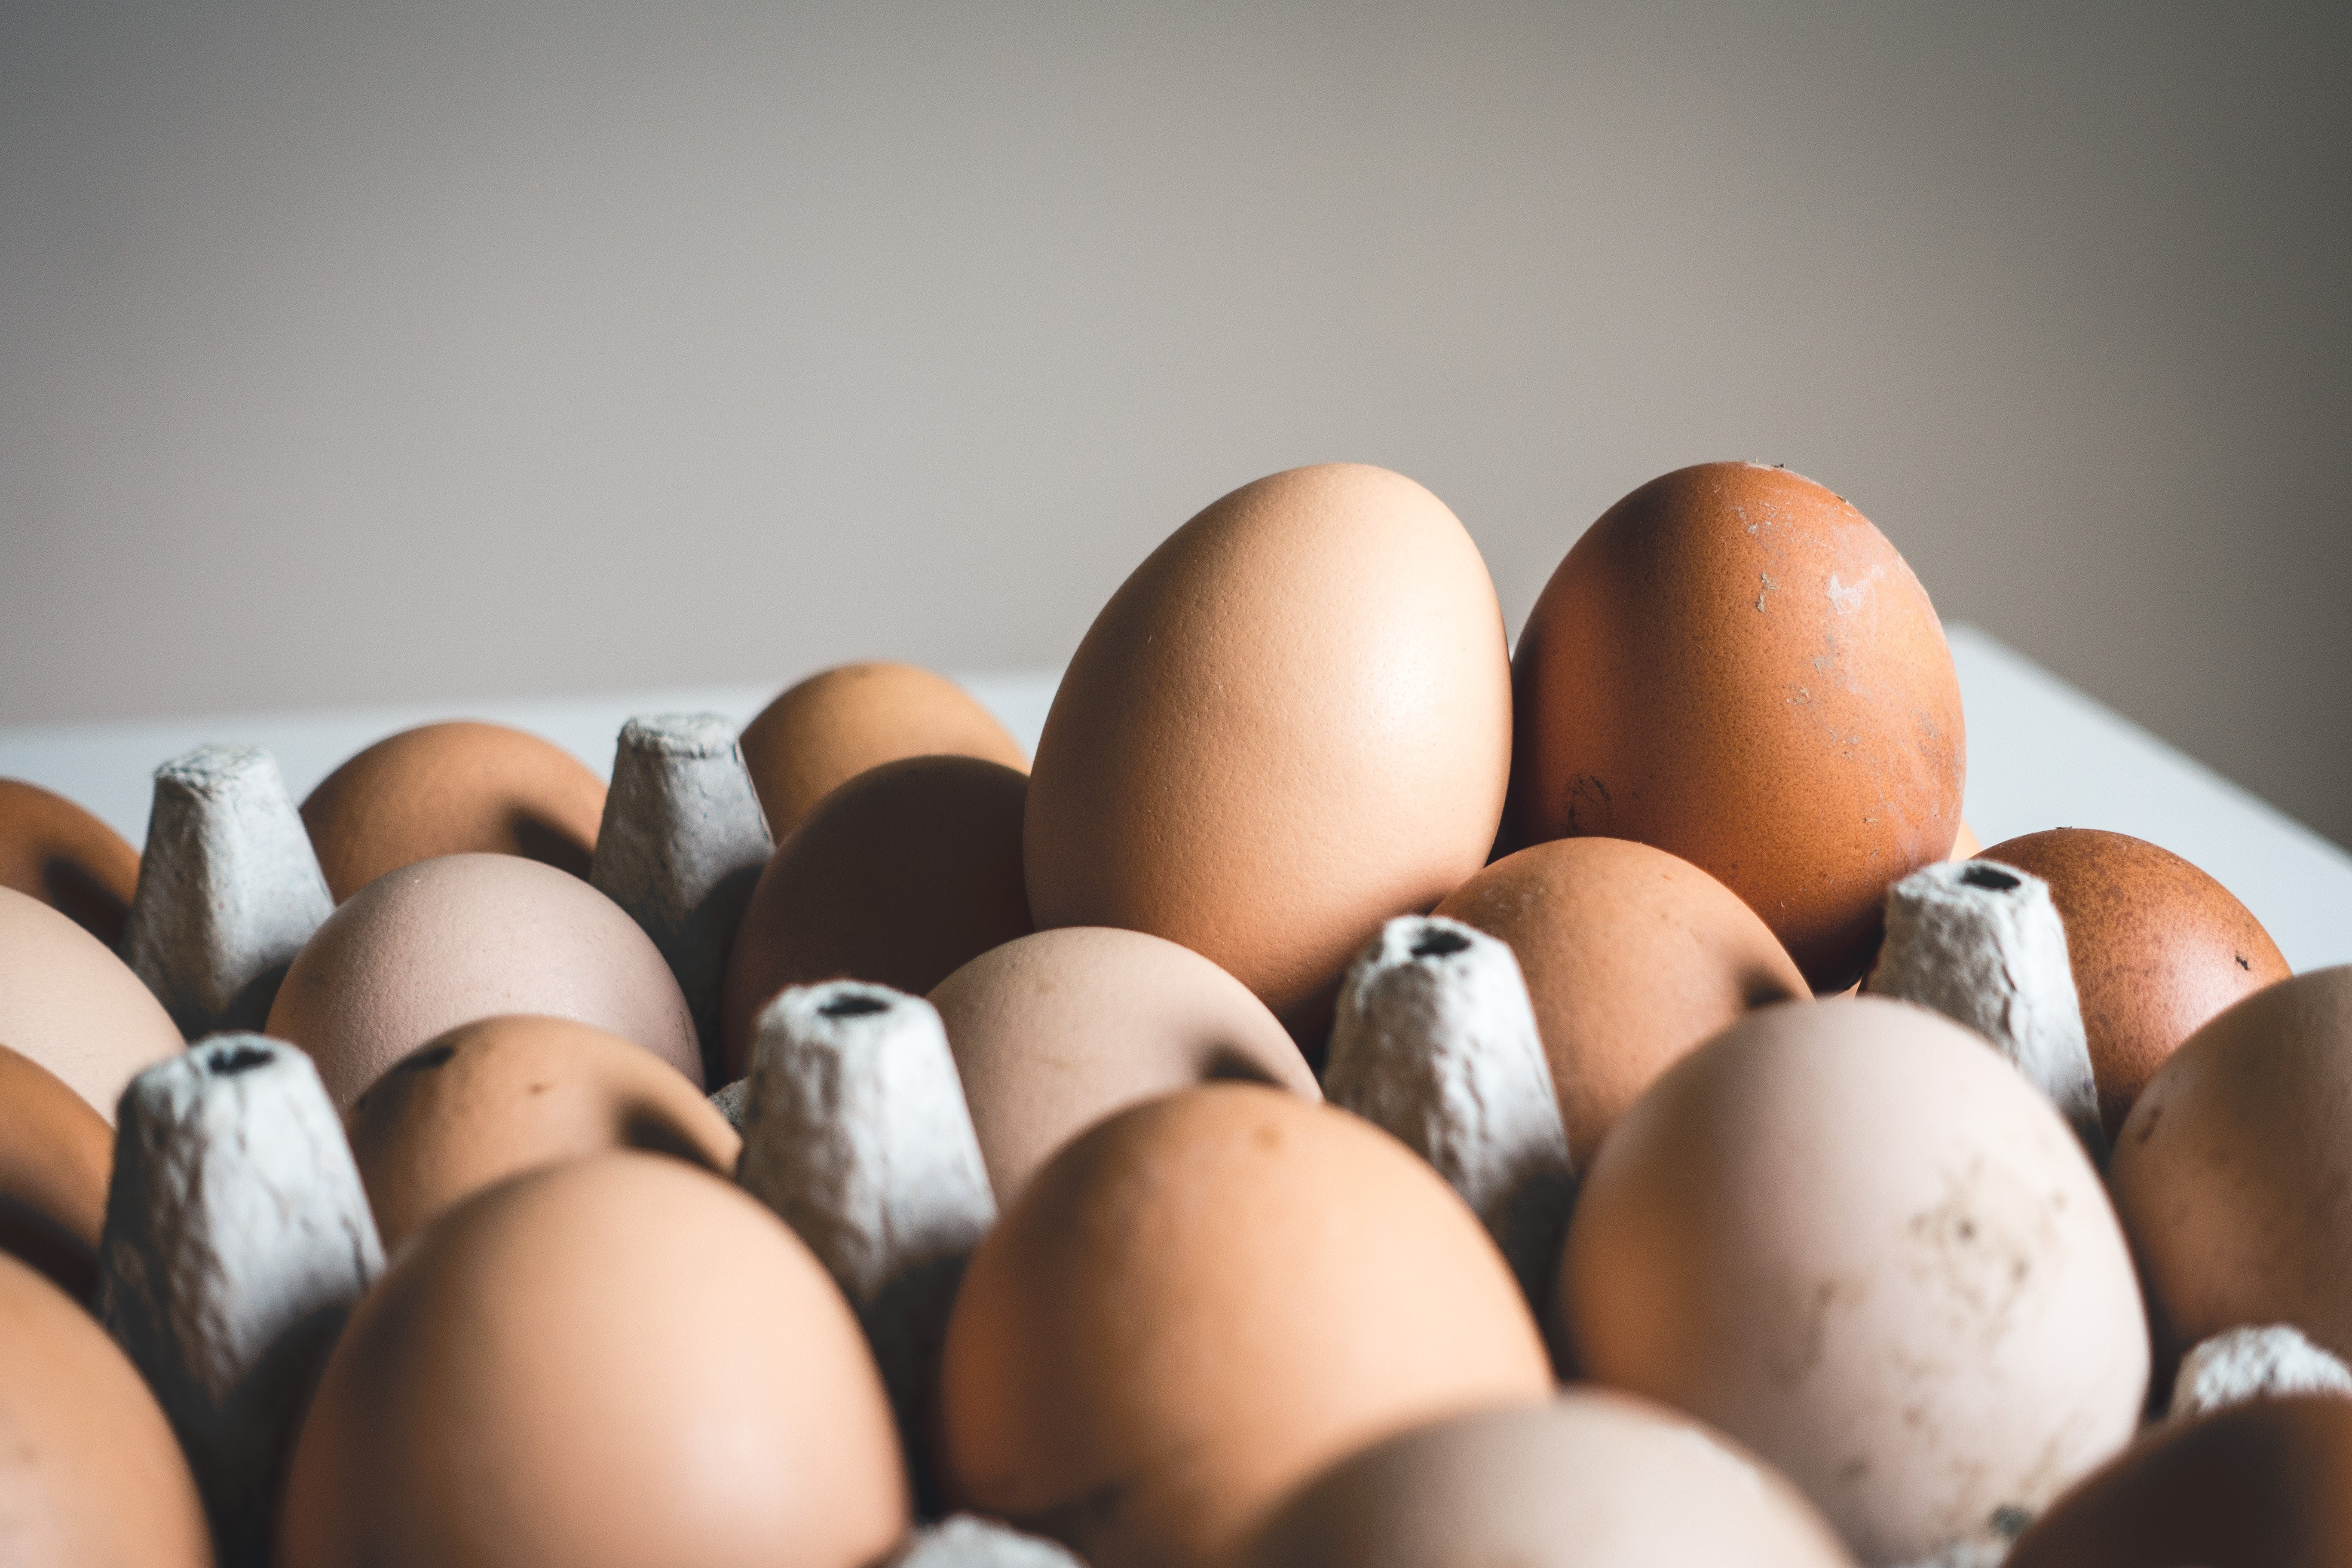 Two extra eggs in a crate | Source: Unsplash.com